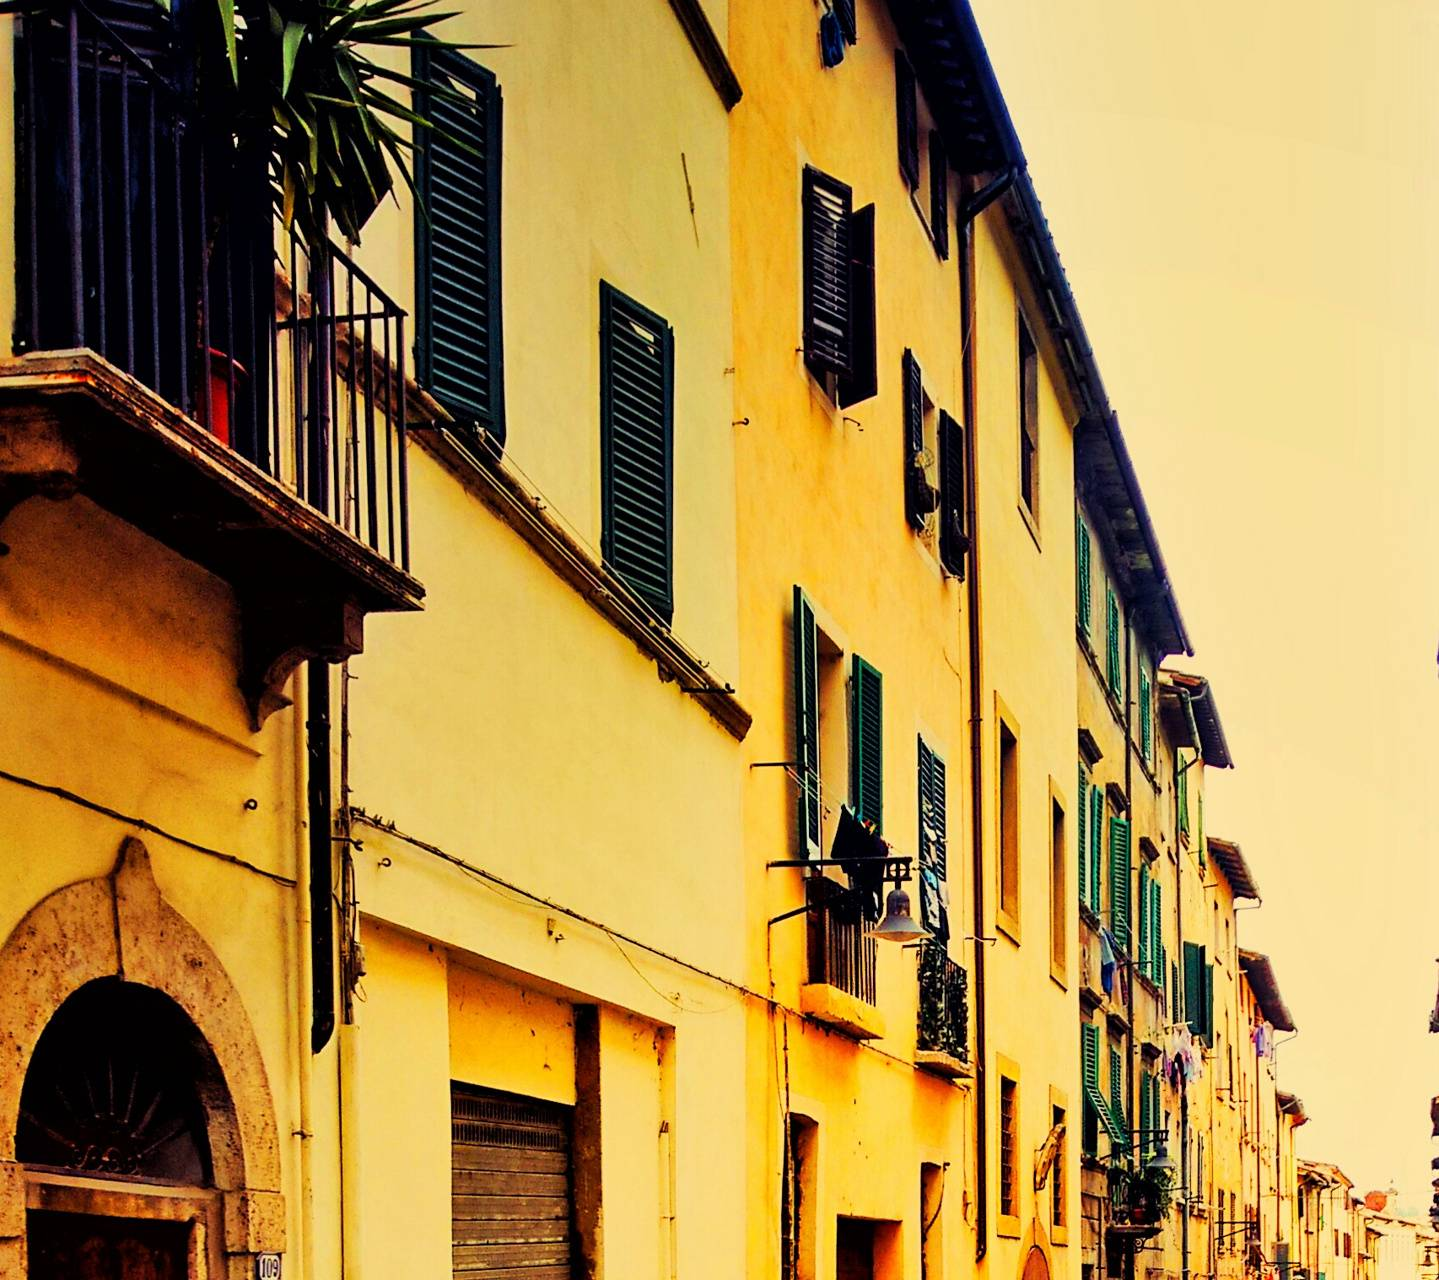 houses in italy